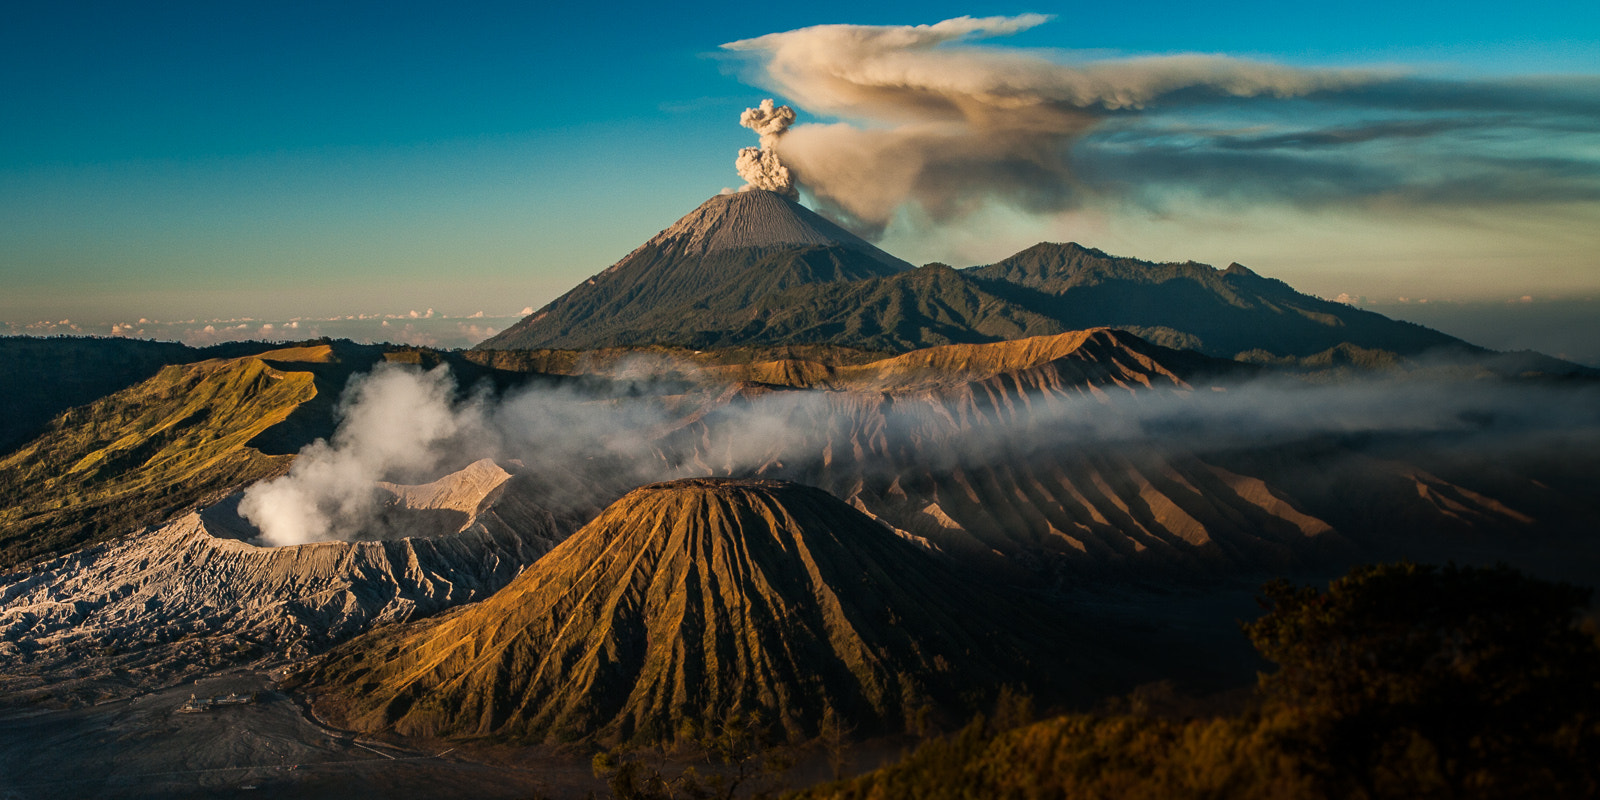 Photograph Tengger Caldera by adrian rohnfelder on 500px